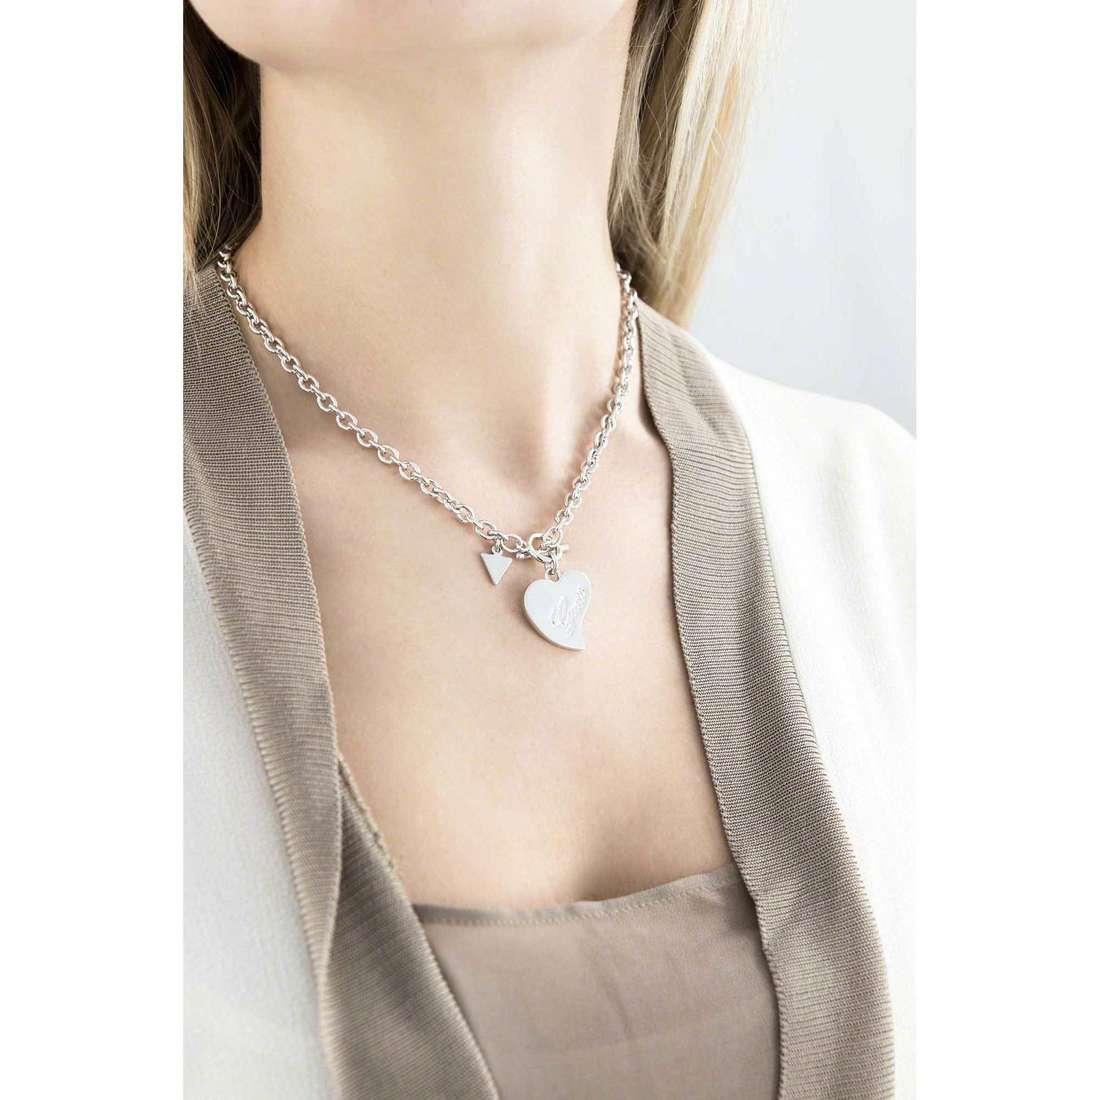 Guess necklaces Love woman UBN71539 indosso